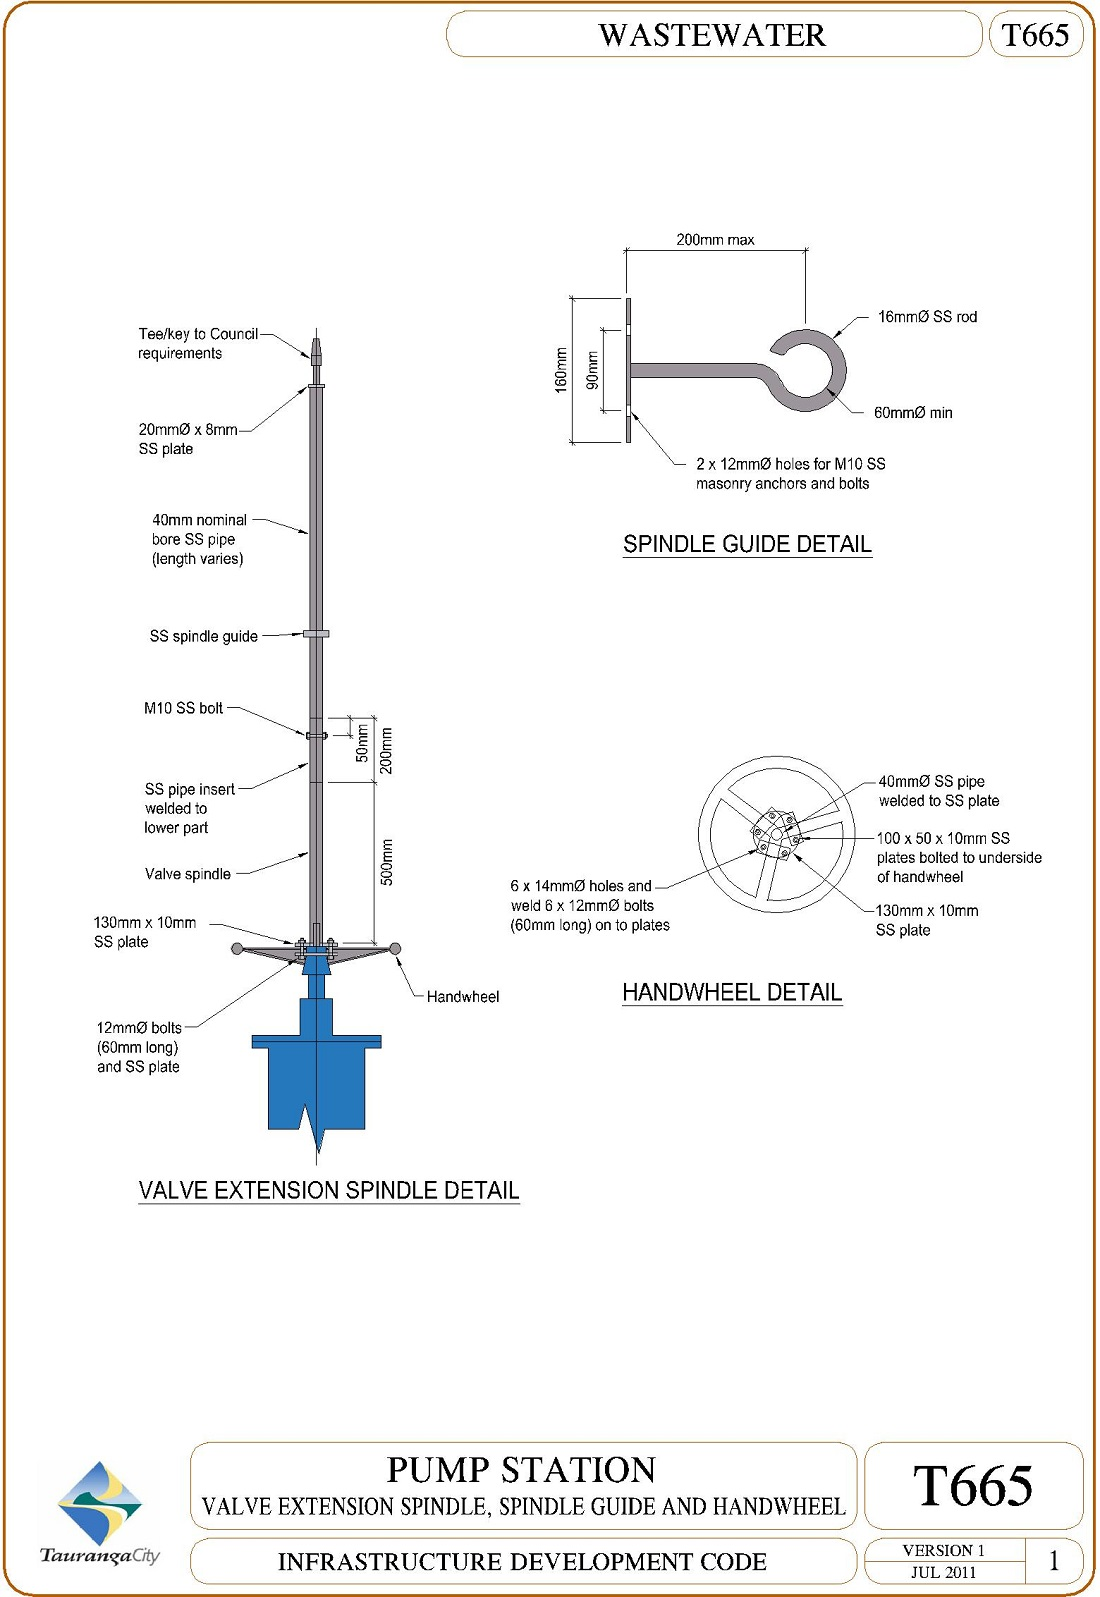 Pump Station - Valve Extension Spindle, Spindle Guide and Handwheel